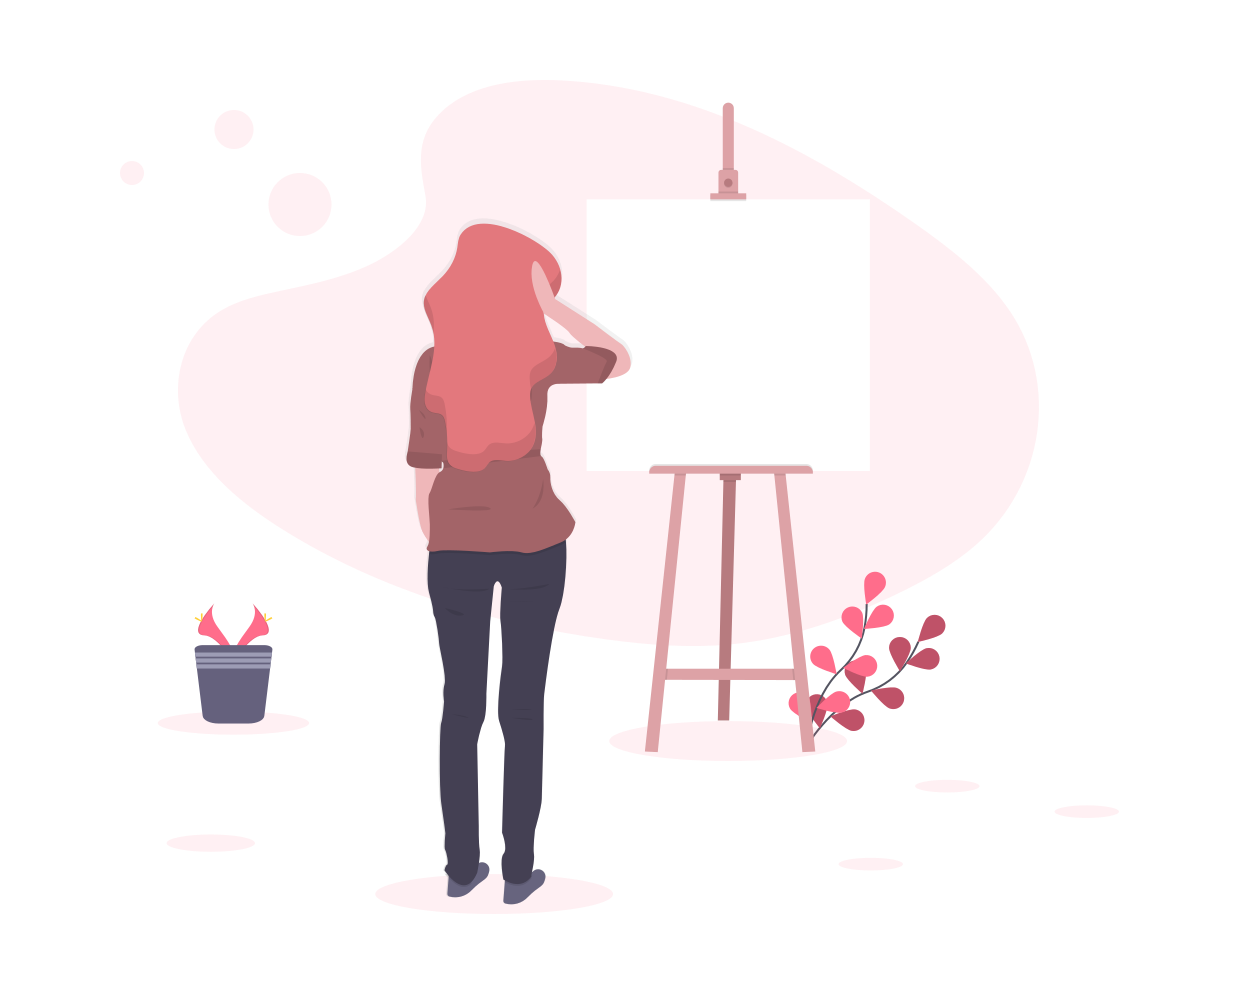 How to Commission Art in 5 Different Ways